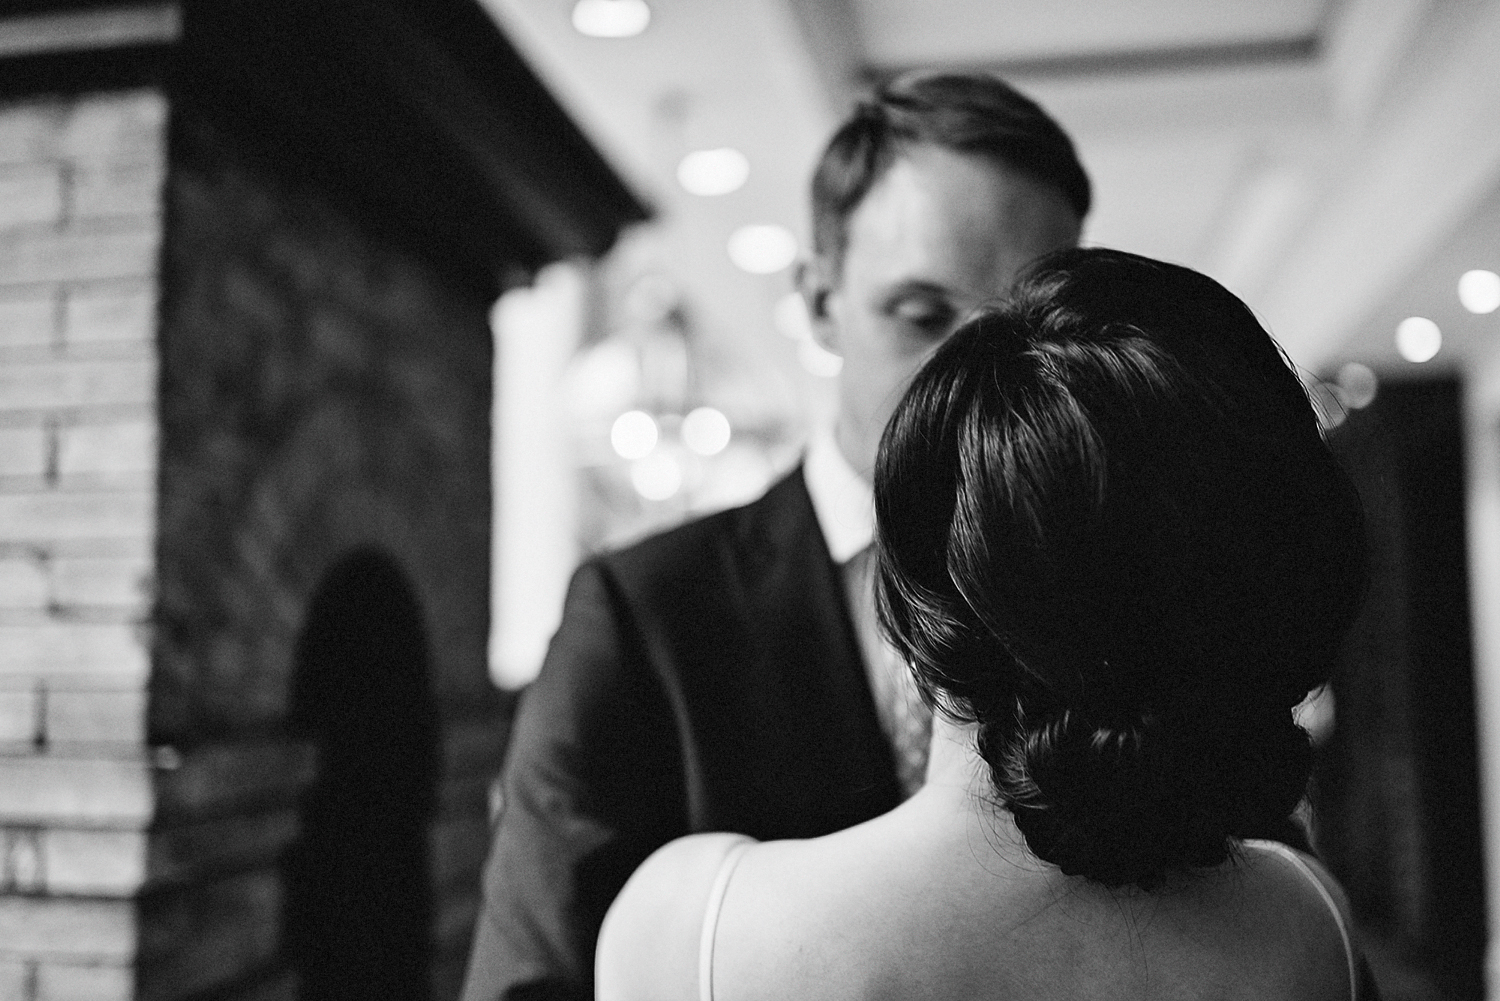 Best-Wedding-Photographers-Toronto_-Urban-City-Wedding-Photography-Downtown-Toronto-Photographer_Vintage-Bride-and-Groom-Details_The-Chase-Wedding-Venue_Candid-Photojournalistic-Documentary-Reception-Bride-Candid-Groom.jpg